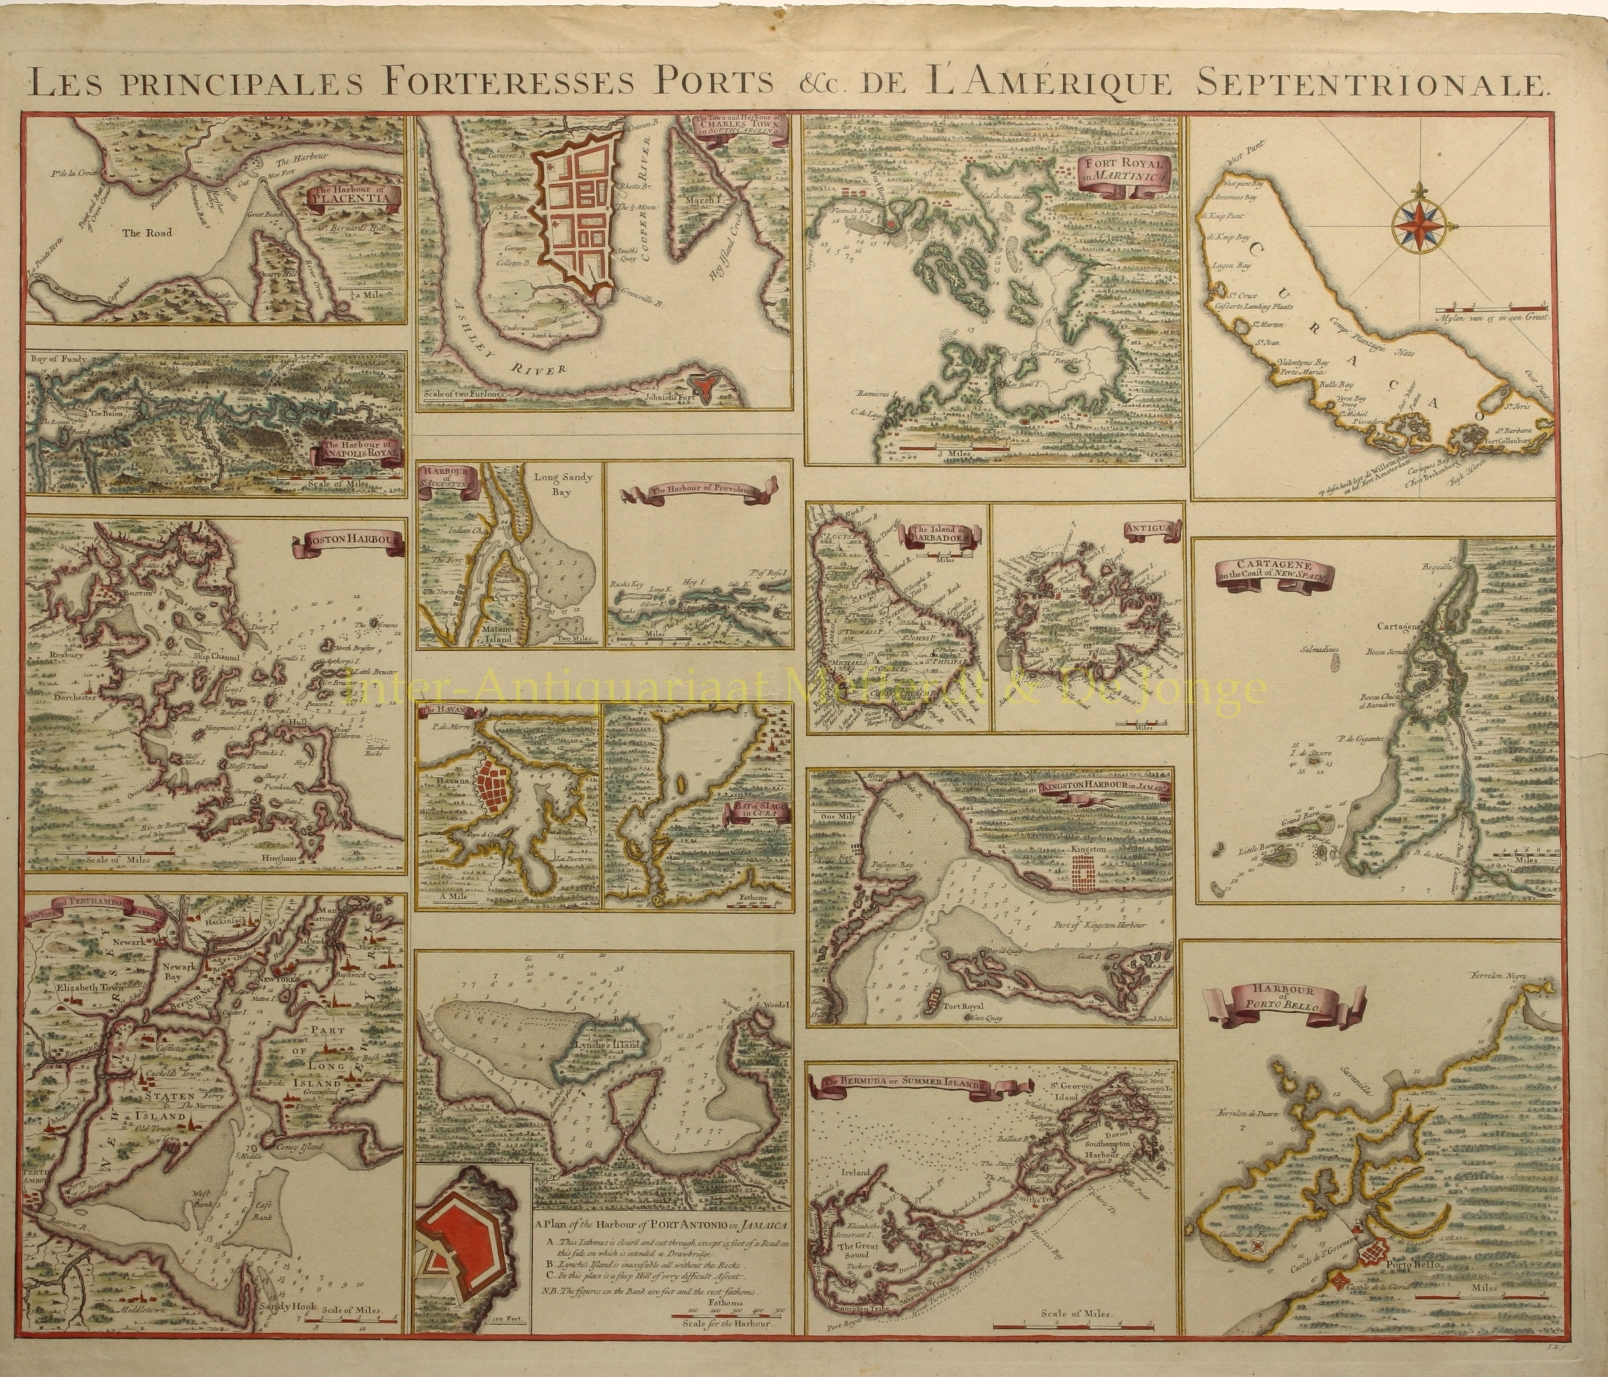 COVENS & MORTIER - American ports, West-Indies - Covens & Mortier, c. 1740